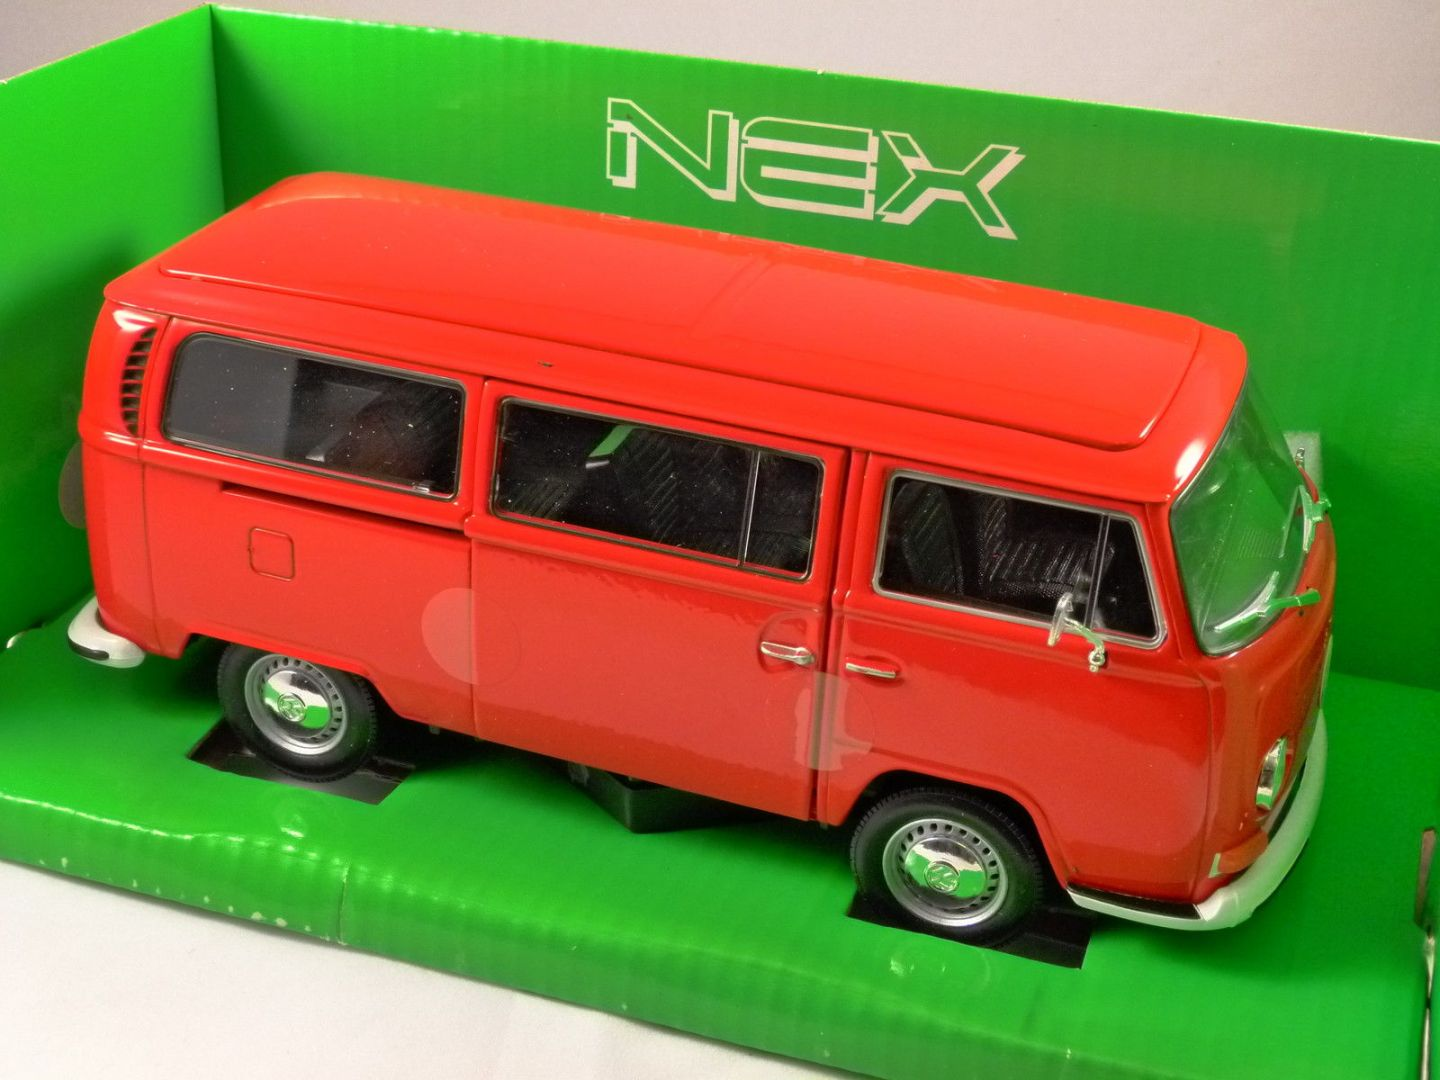 1972 volkswagen t2 combi bus in red 1 24 scale model by welly. Black Bedroom Furniture Sets. Home Design Ideas